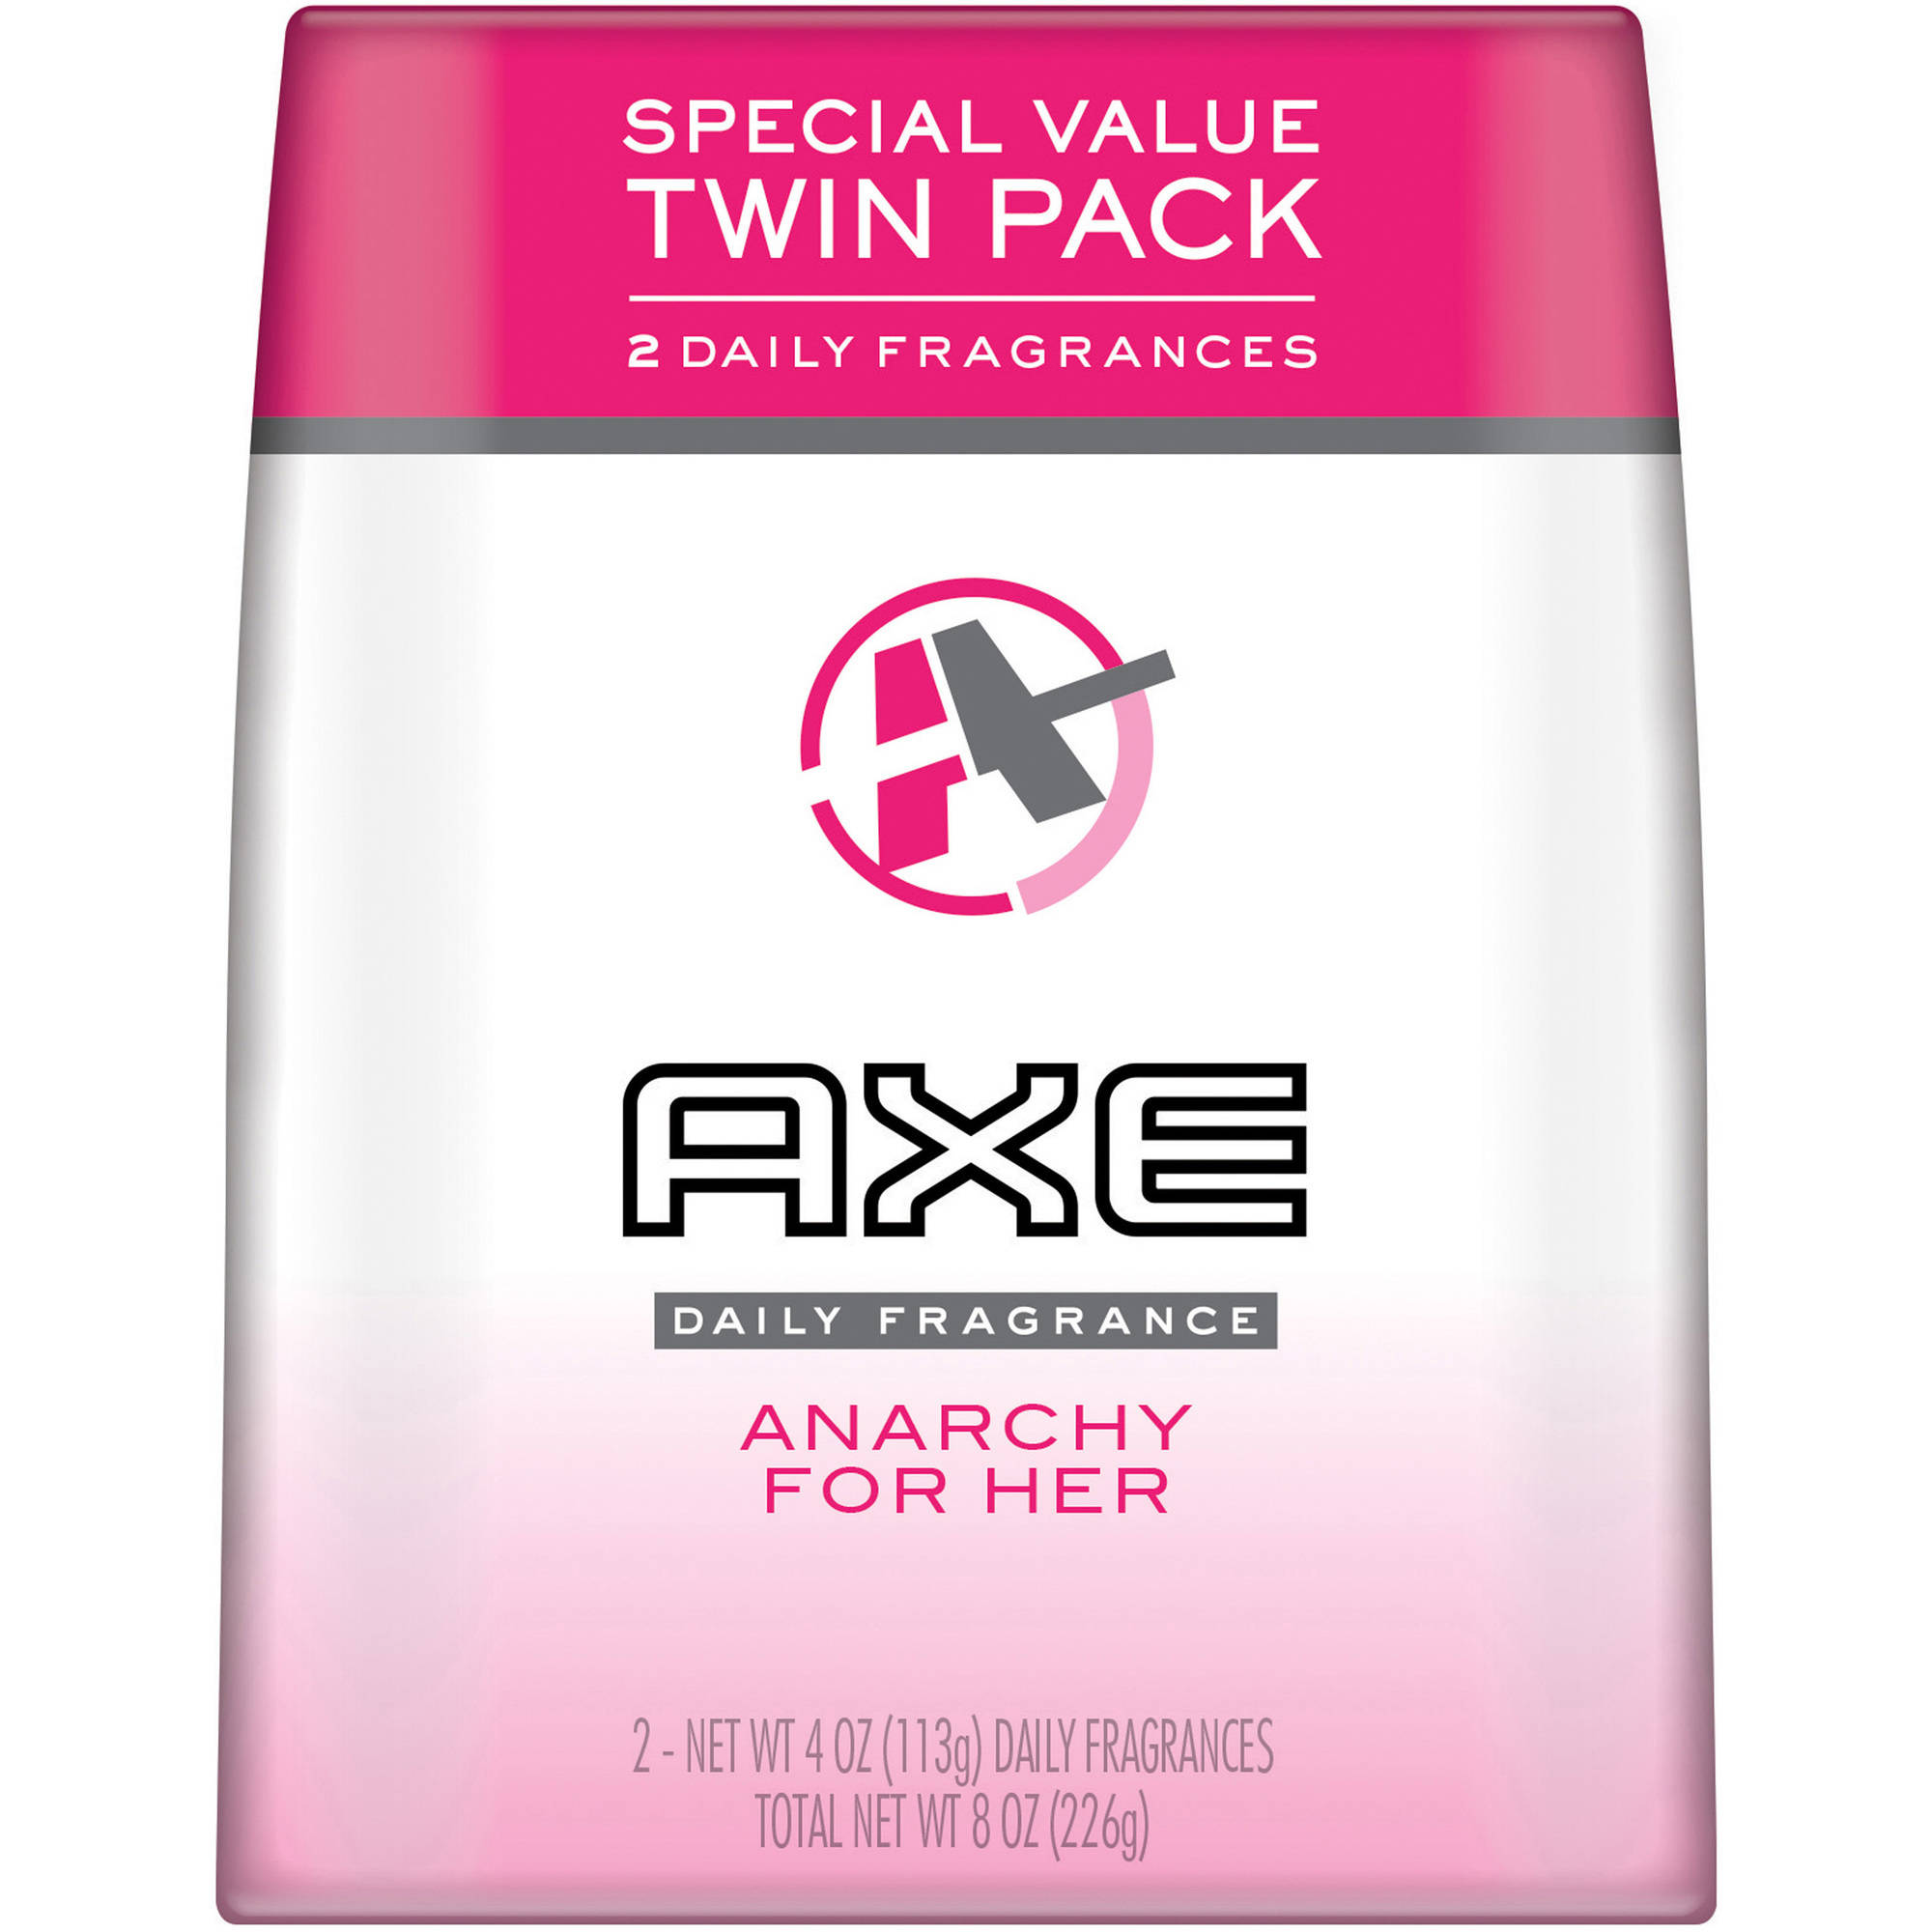 Axe Anarchy For Her Daily Fragrance, 4 oz, Twin Pack